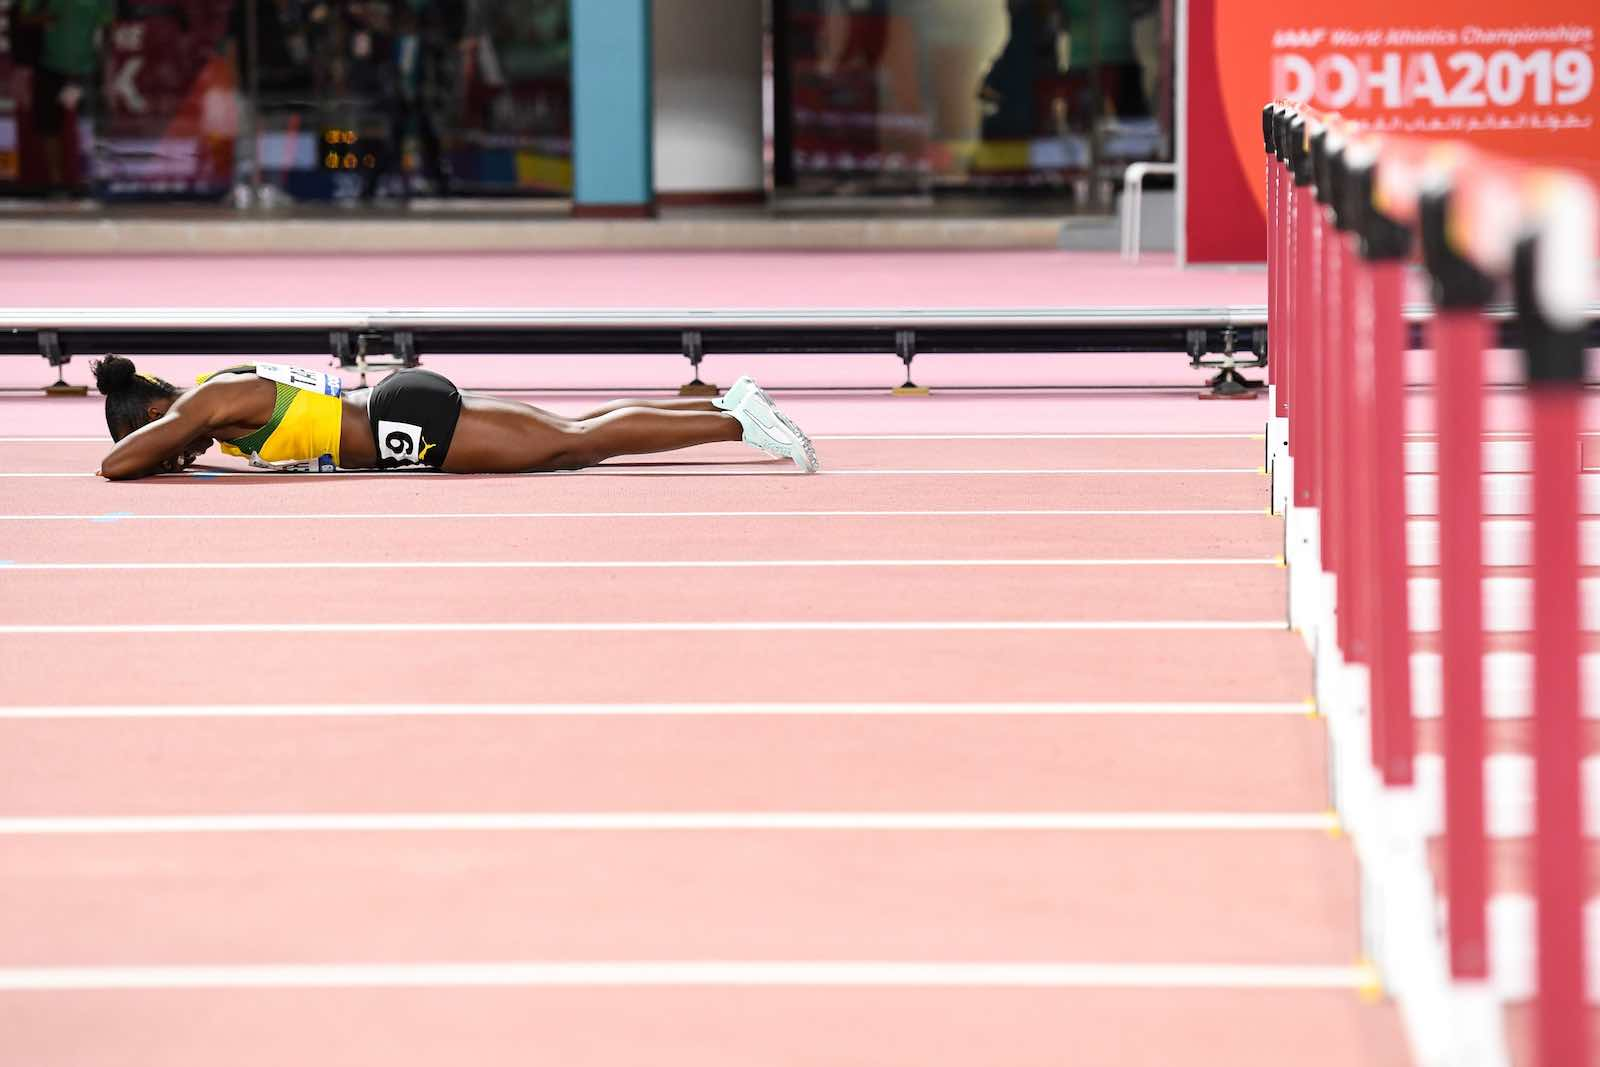 Jamaica's Megan Tapper following the women's 100-metre hurdles final in Doha on 6 October 2019 (Photo by Kirill Kudryavtsev/AFP/Getty Images)